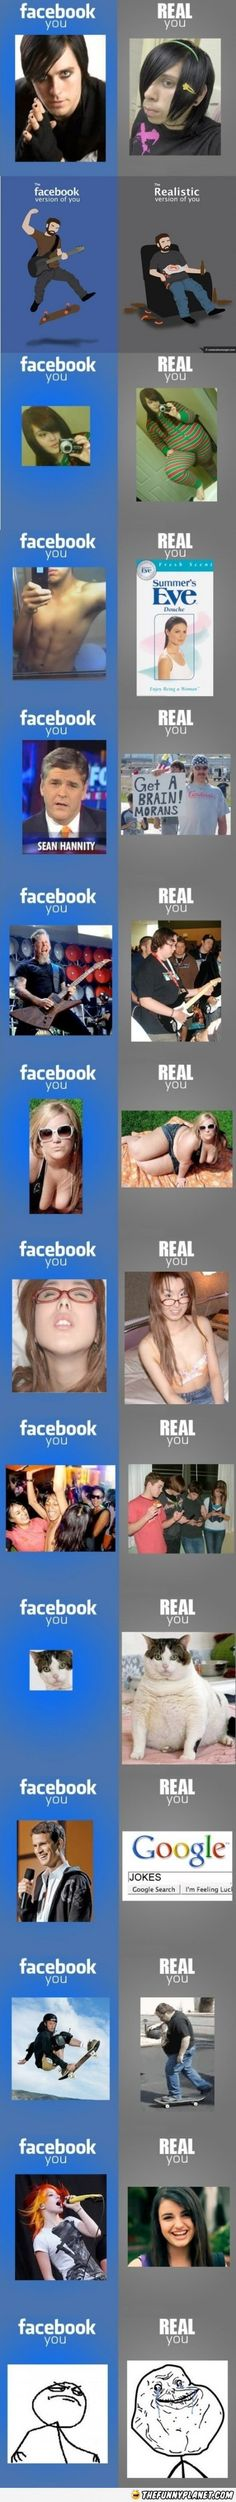 Facebook And Reality